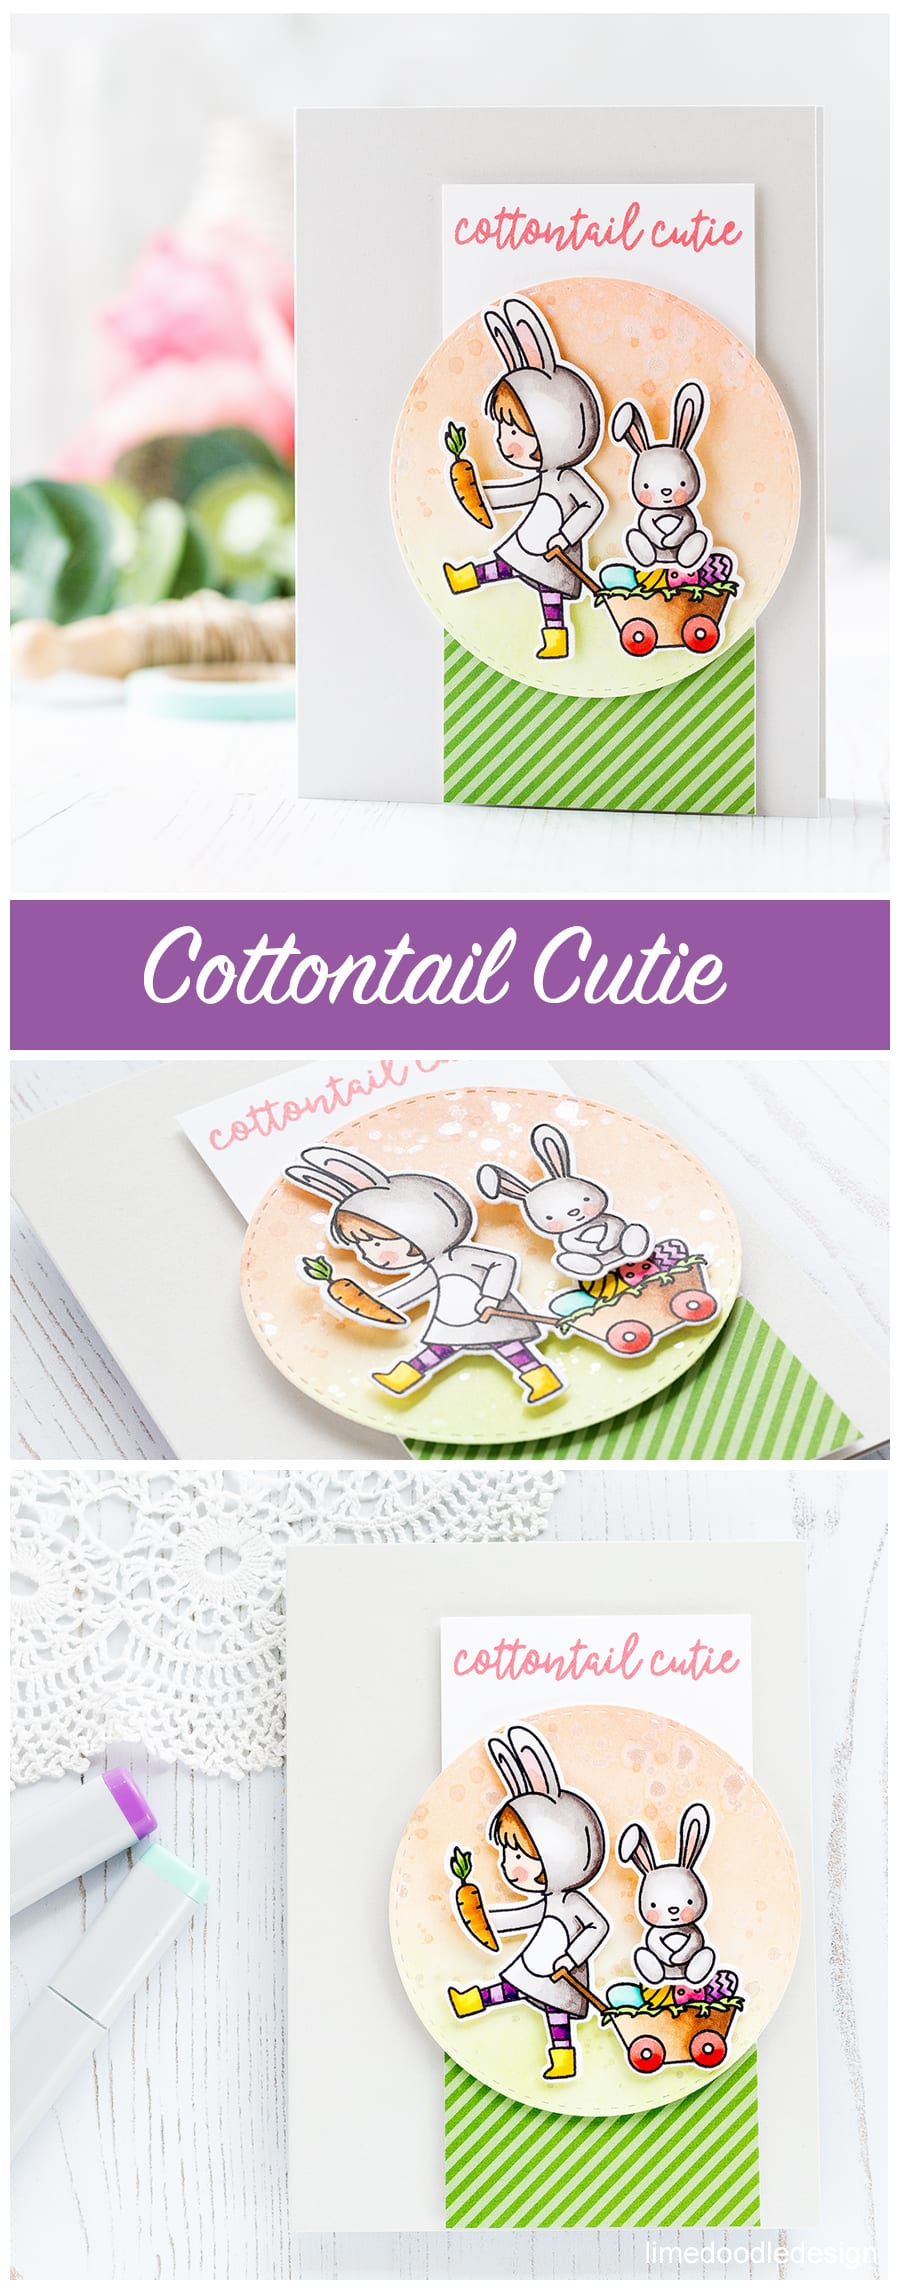 Cottontail cutie Easter/Spring/Bunny card by Debby Hughes. Find out more about this card here: https://limedoodledesign.com/2017/02/neat-tangled-cottontail-cuties/